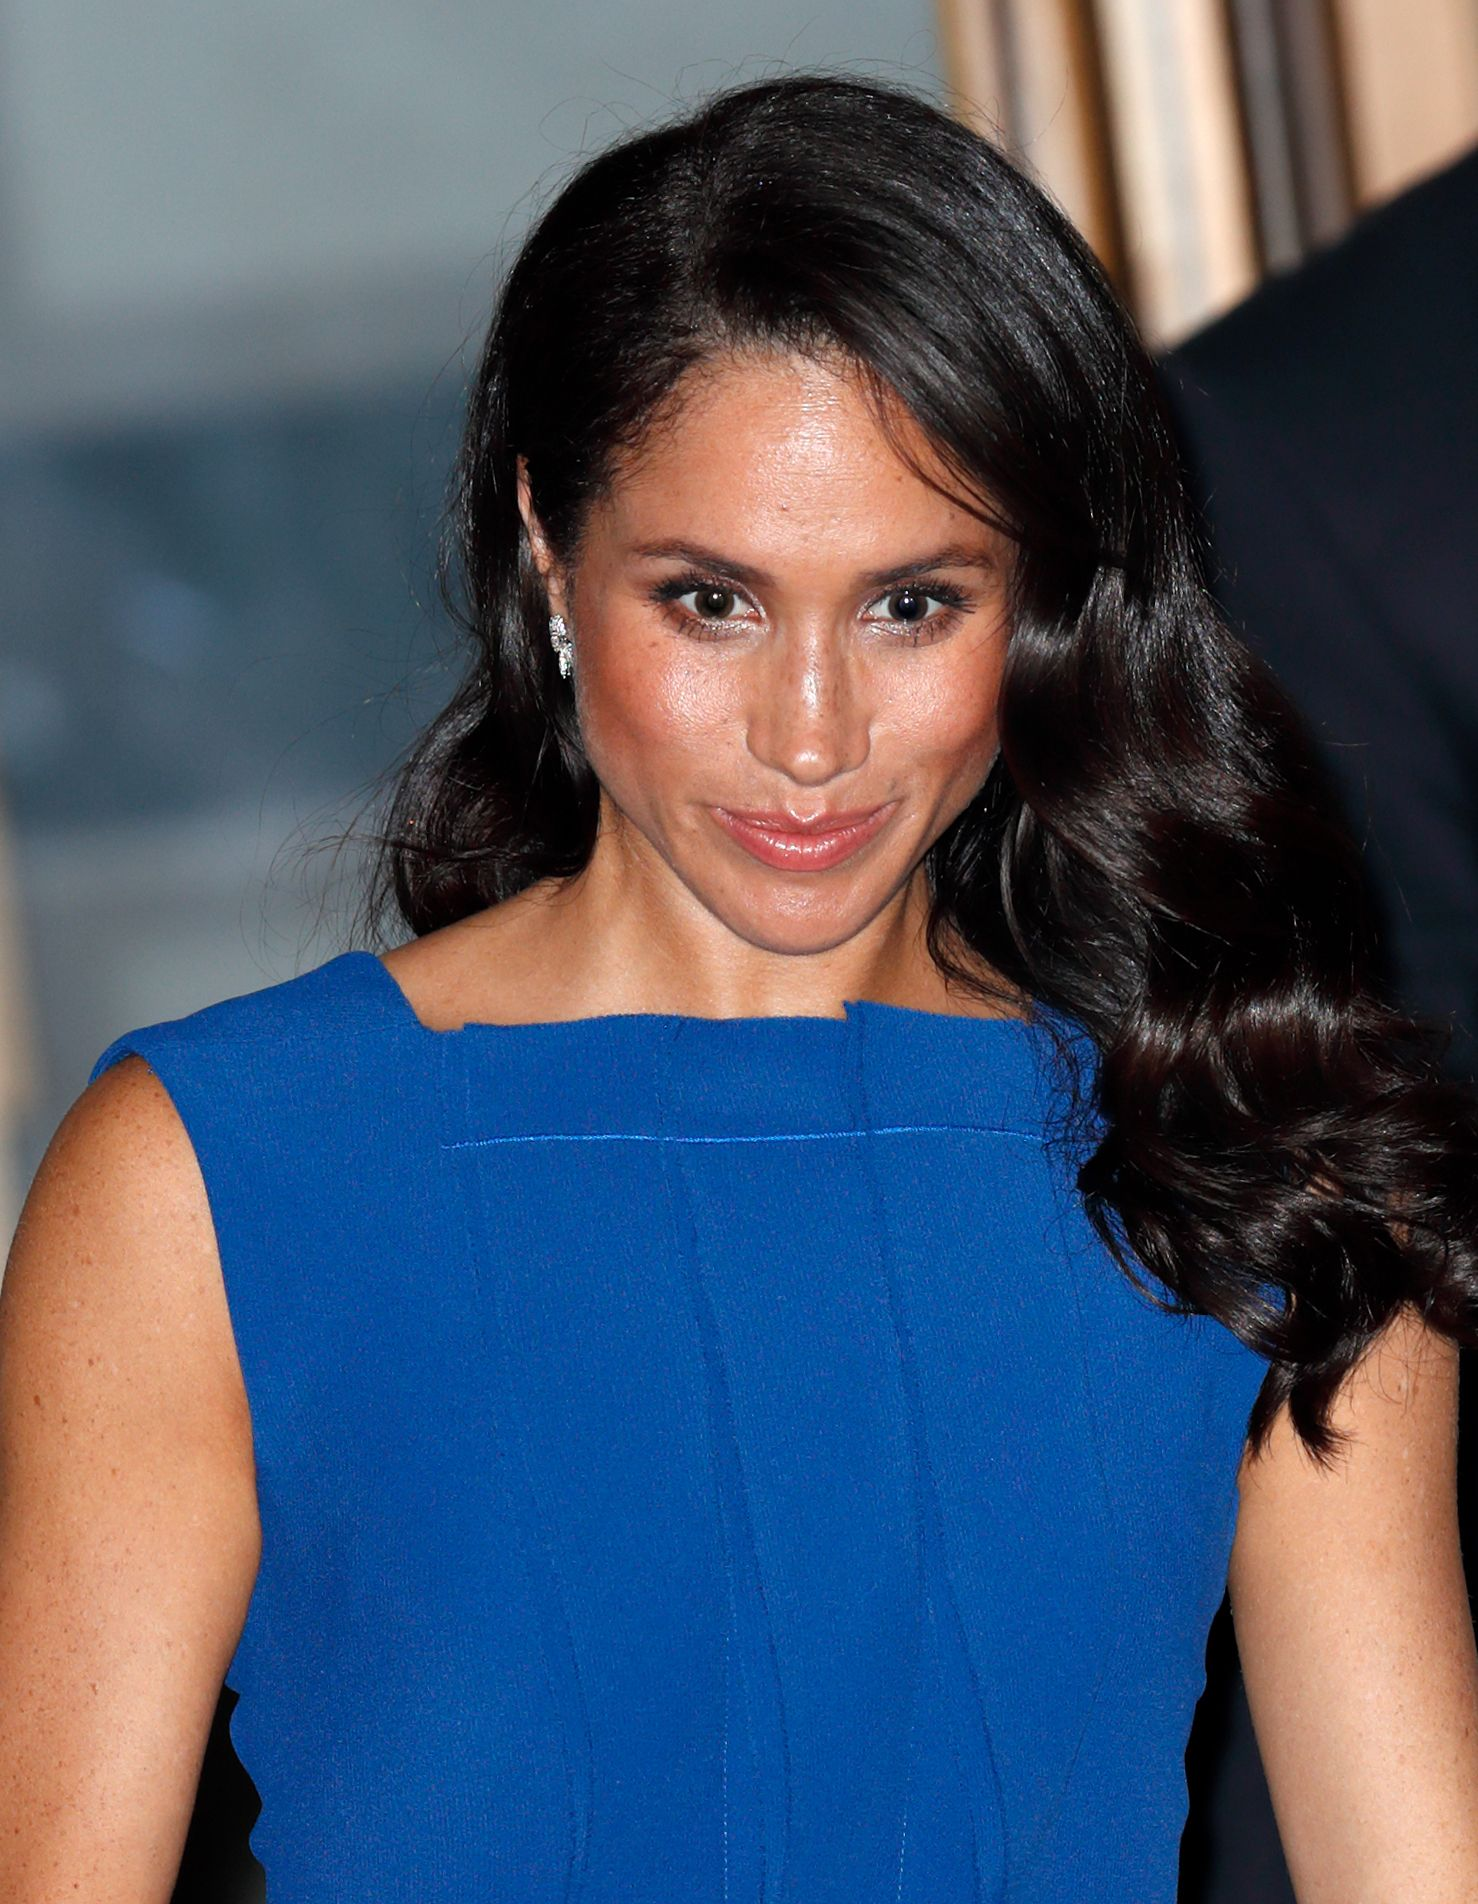 Meghan Markle has often been criticized by the media / Getty Images